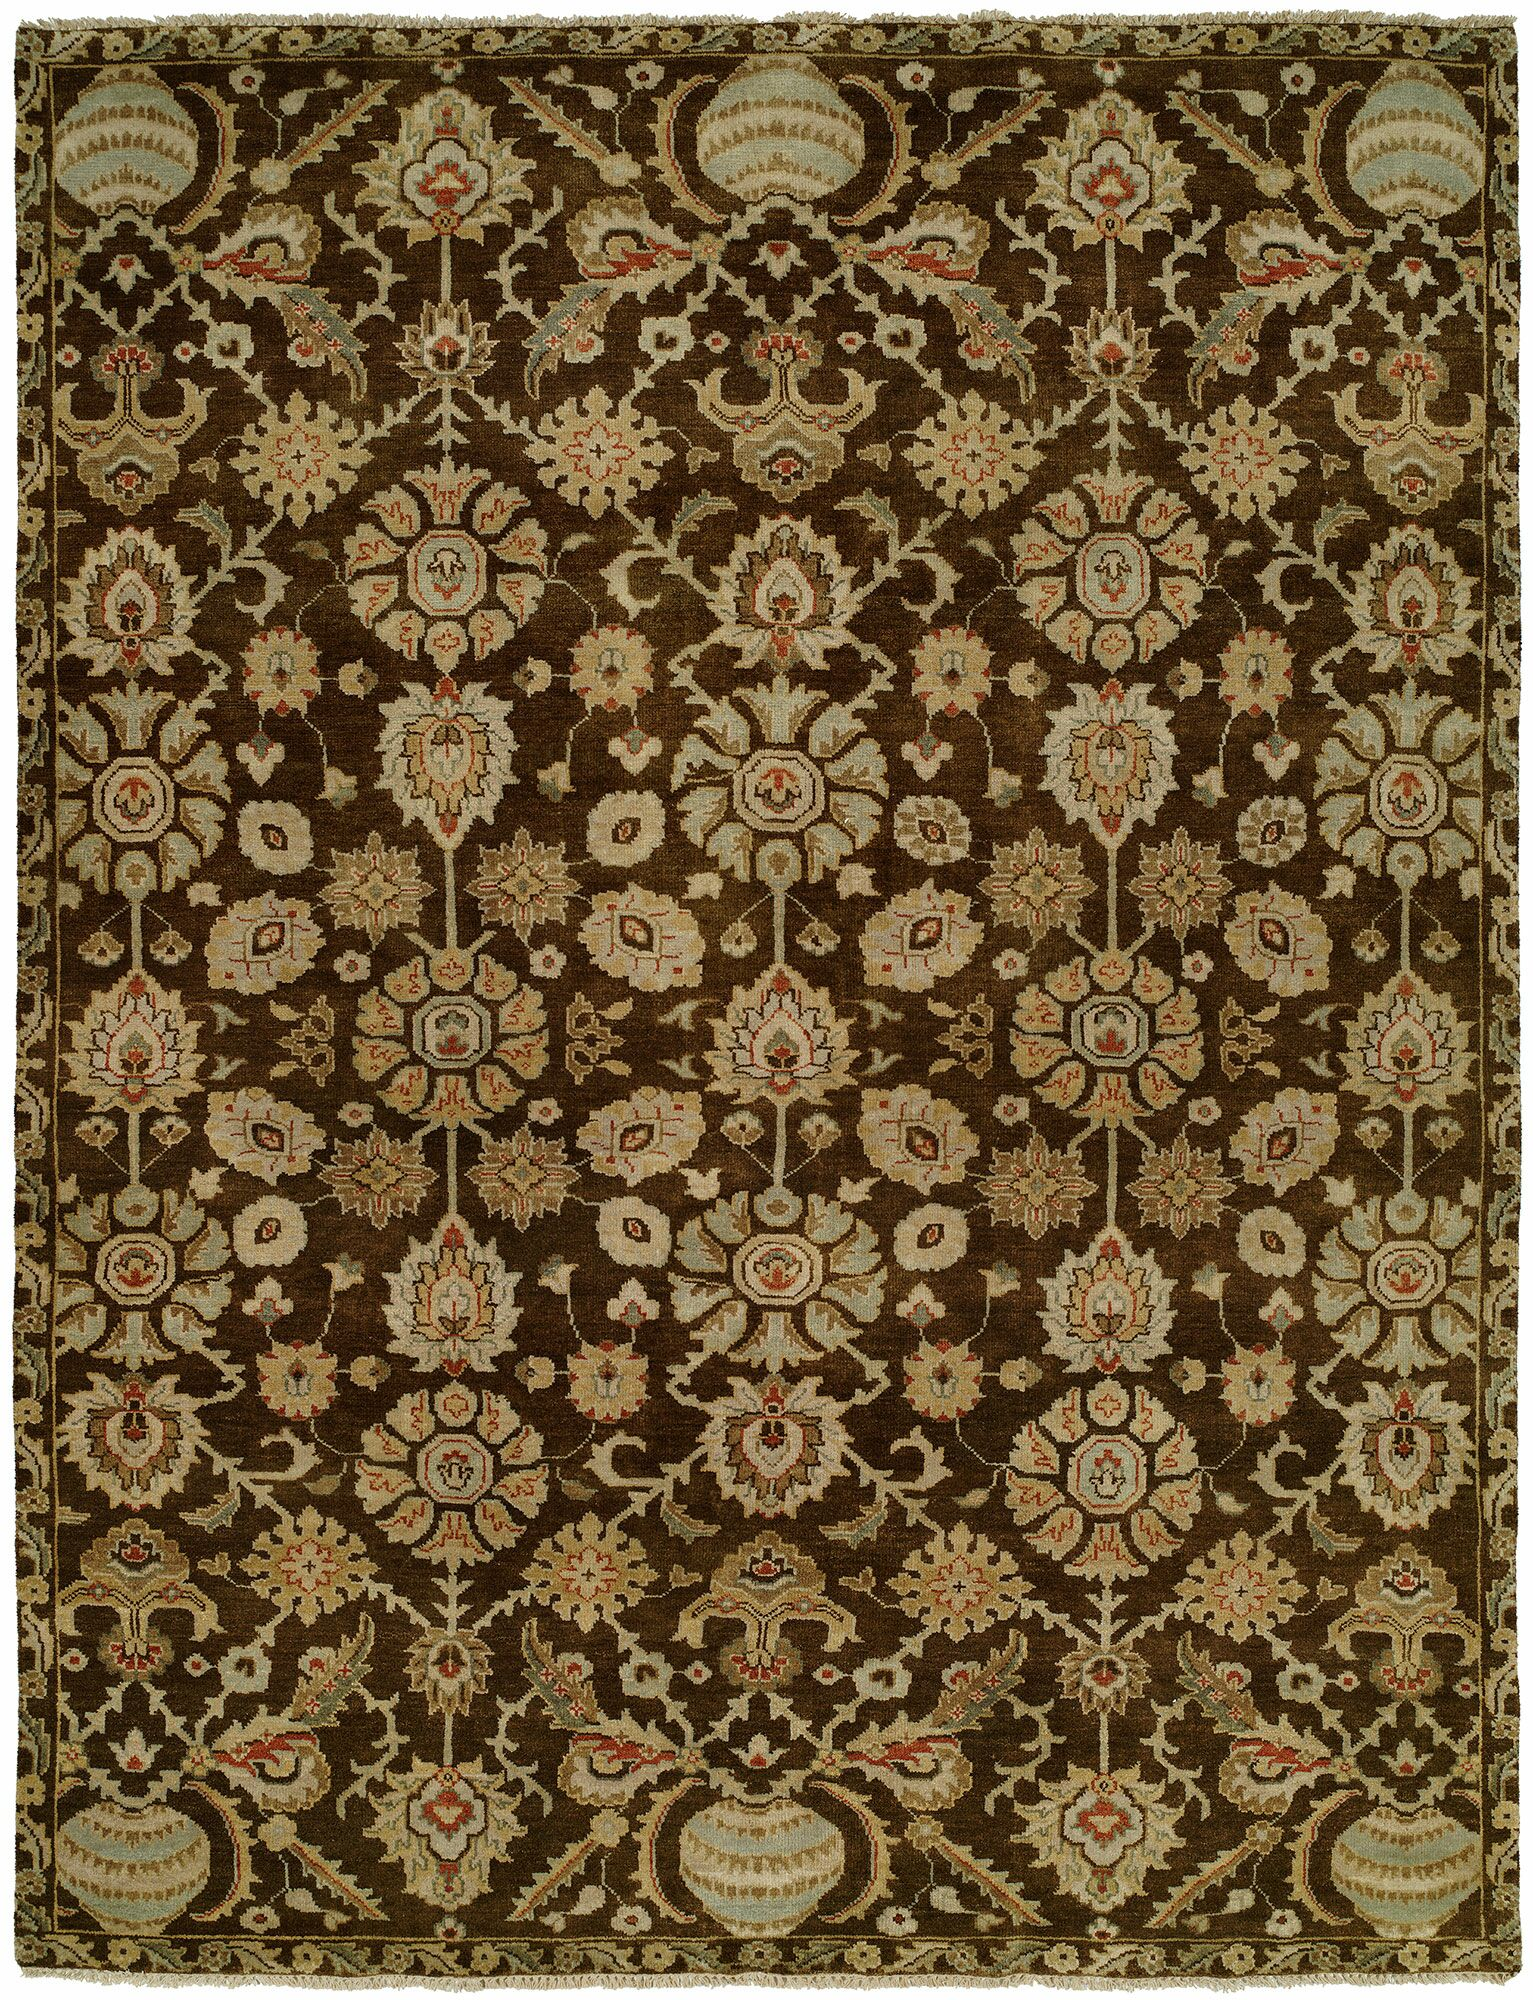 Lora Hand Knotted Wool Brown/Beige Area Rug Rug Size: Rectangle 12' x 15'